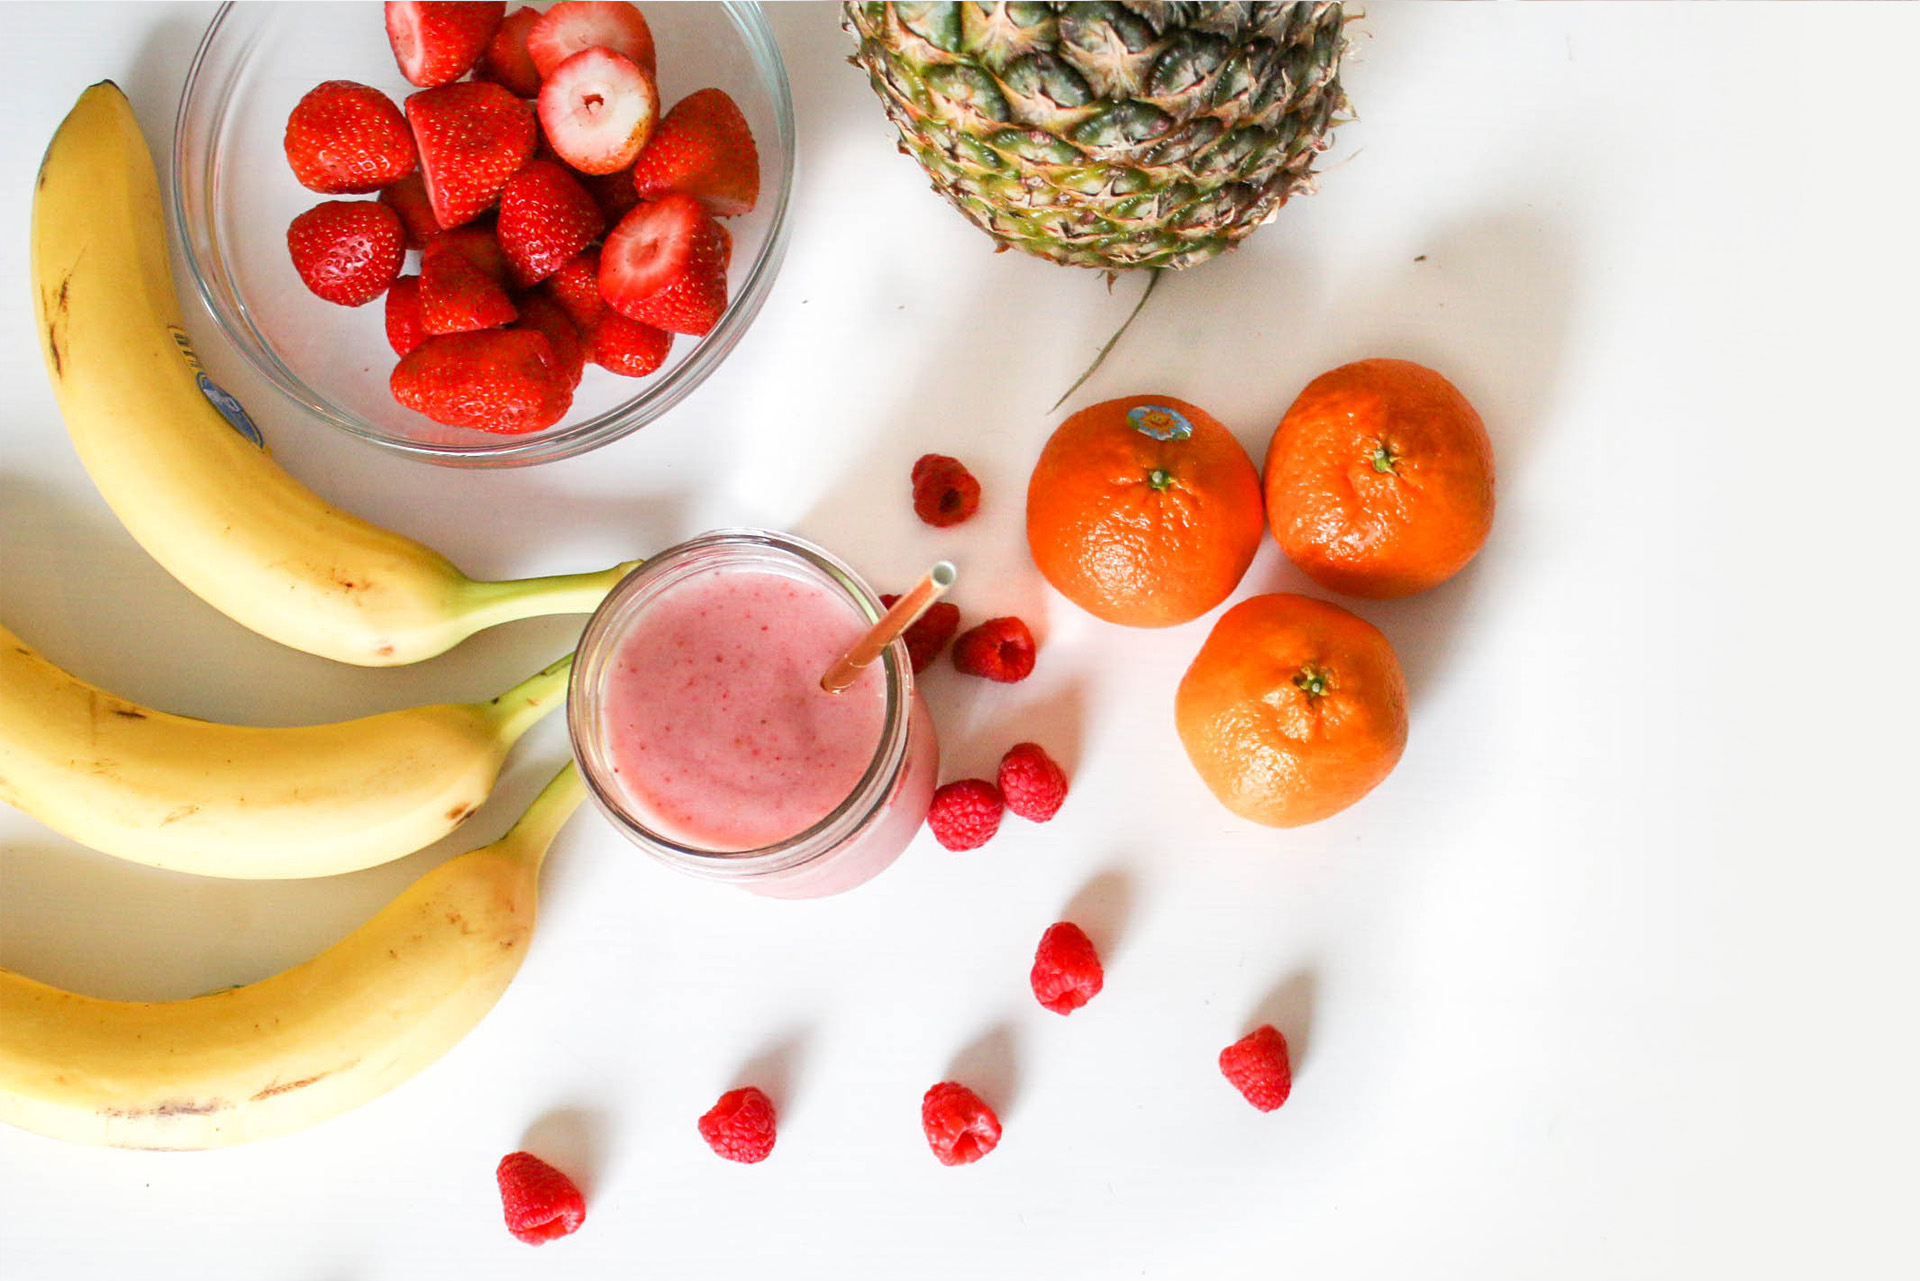 Pieces of fruit or smoothie for a Mediterranean snack